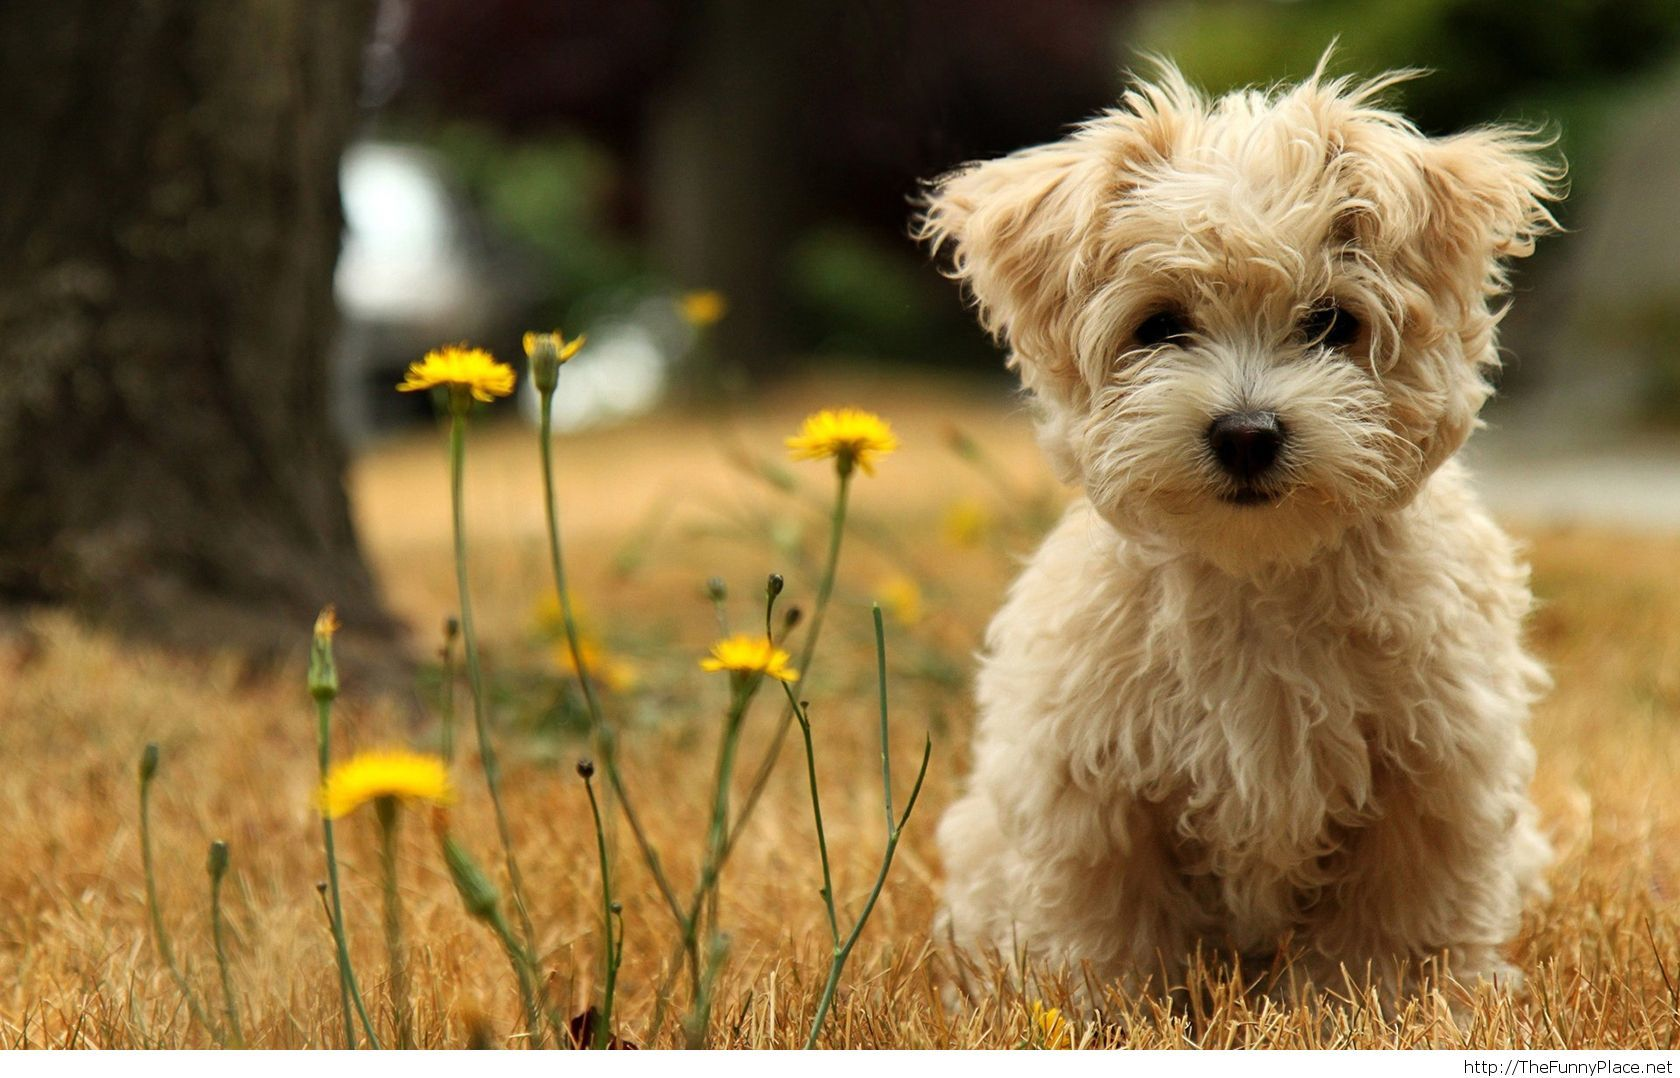 Cute dog  wallpaper HD